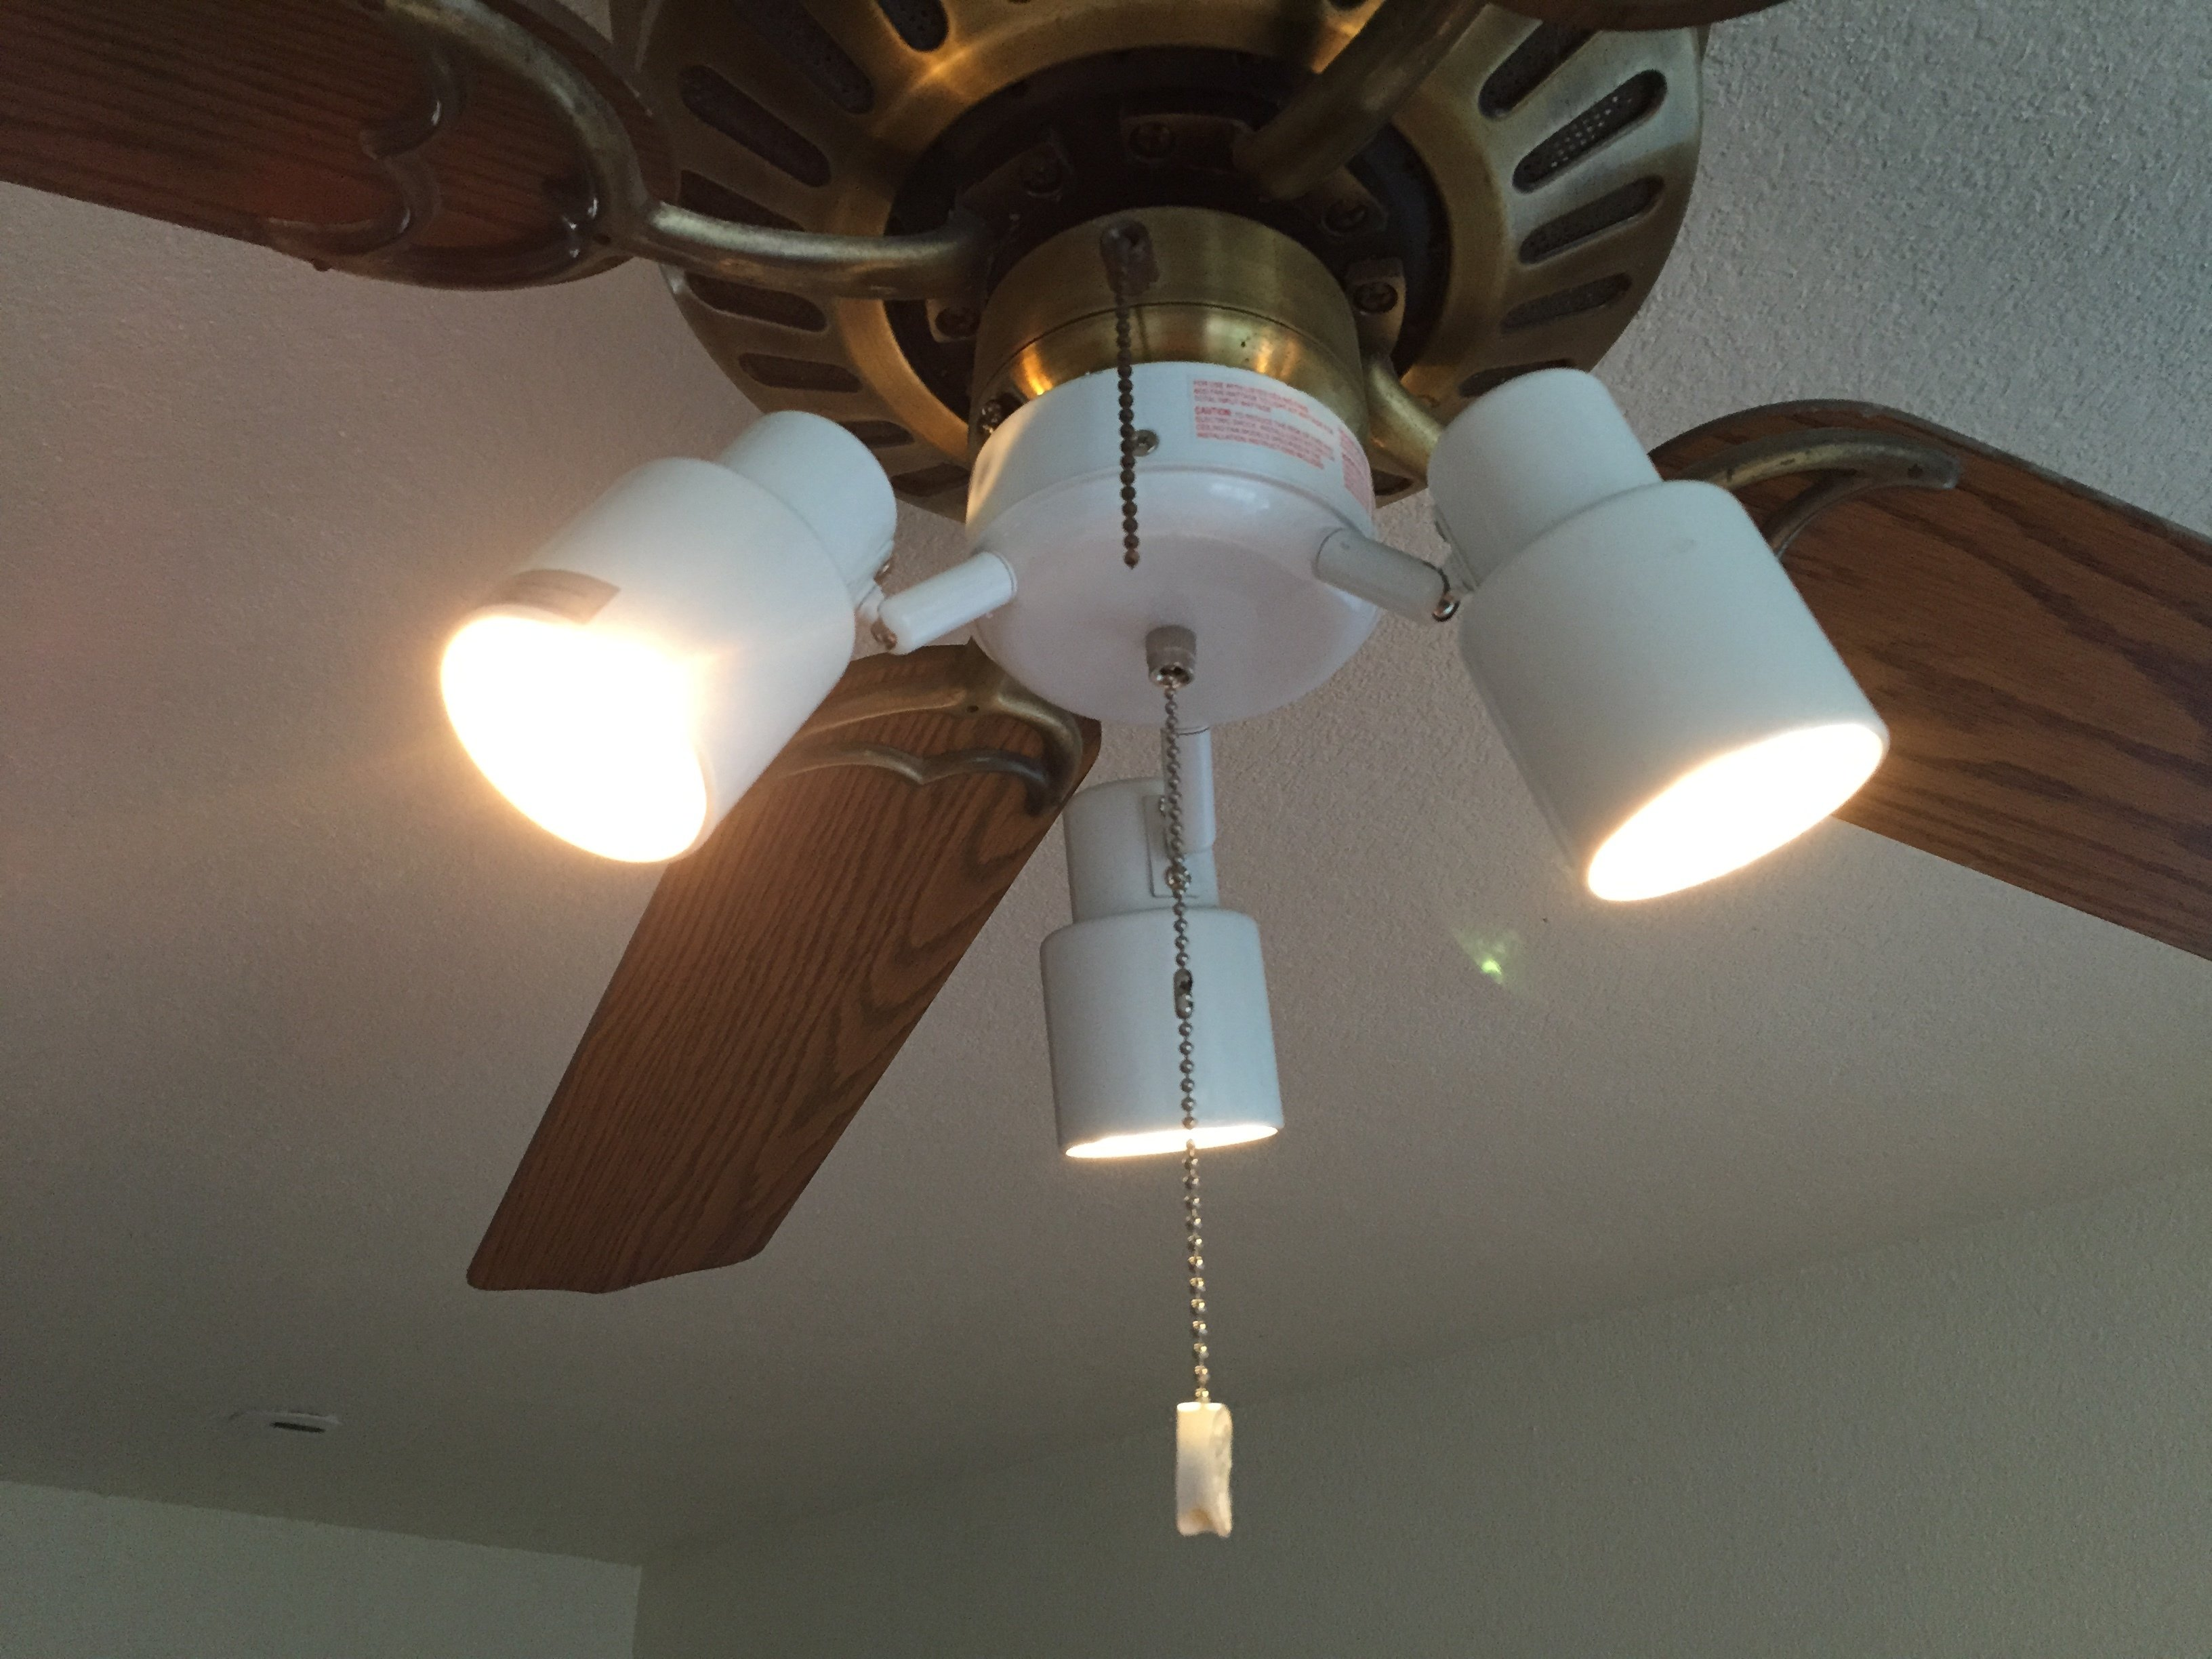 Ceiling Fans With Good Lighting Ceiling Fan Light Fixture Replacement Ifixit Repair Guide